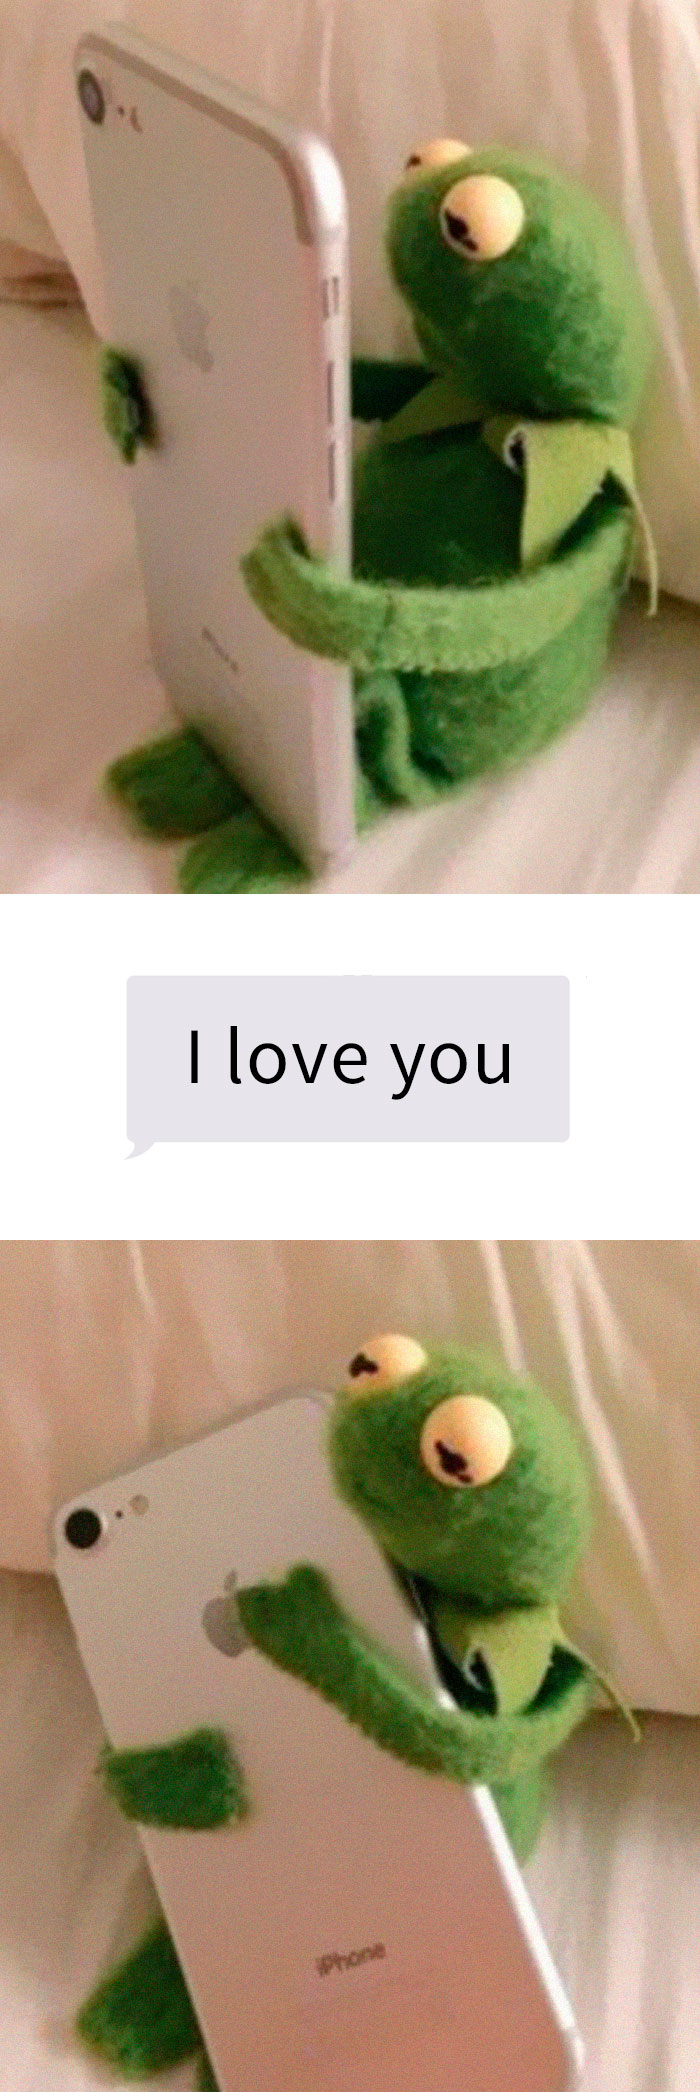 50 Wholesome Relationship Memes You Need To Send To Your Significant Other Bored Panda